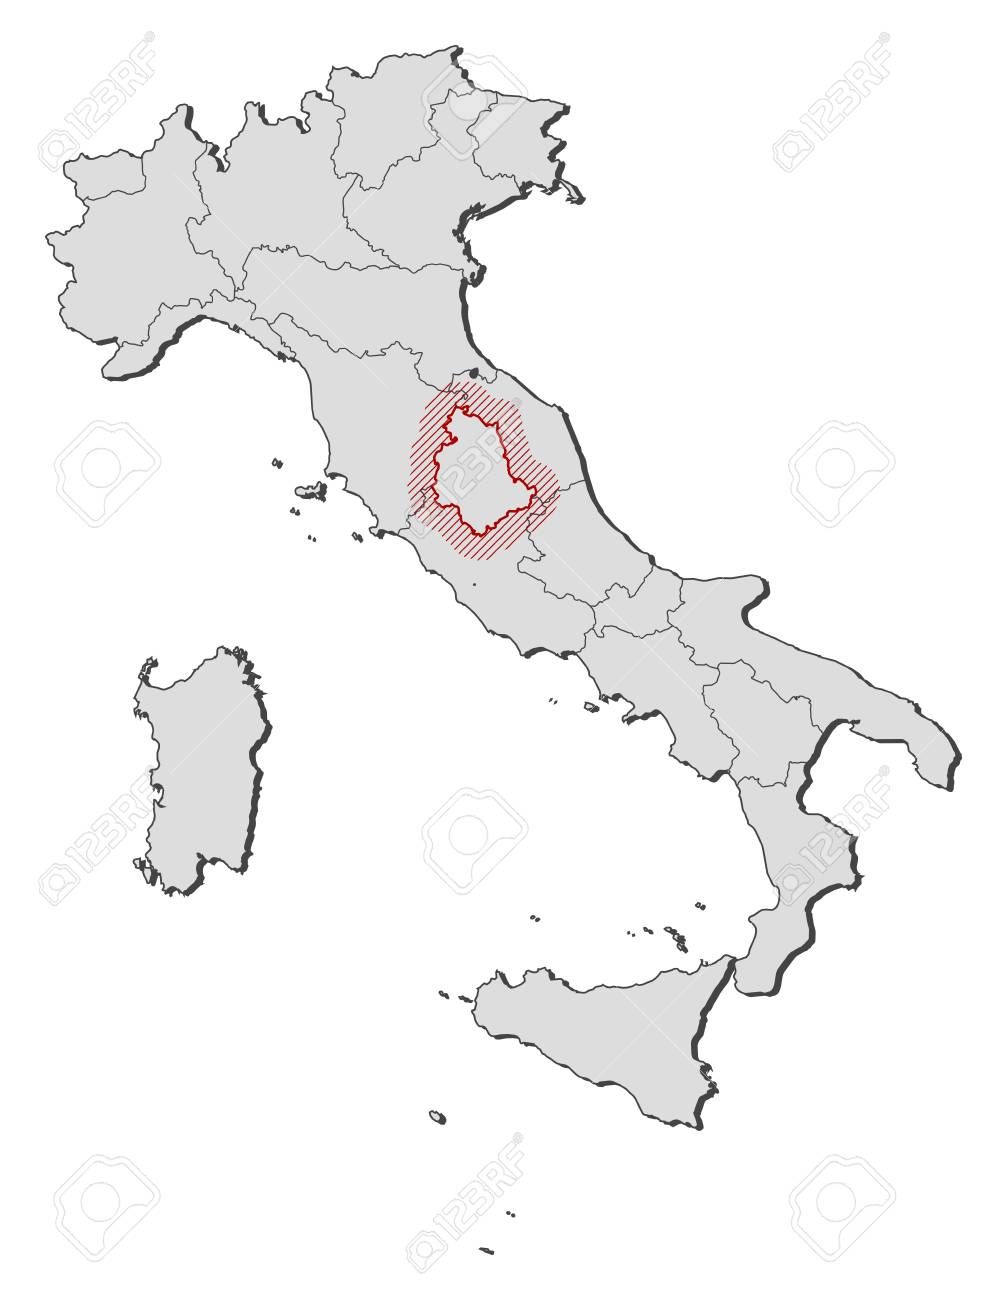 Map Of Italy With The Provinces Umbria Is Highlighted By A Hatching